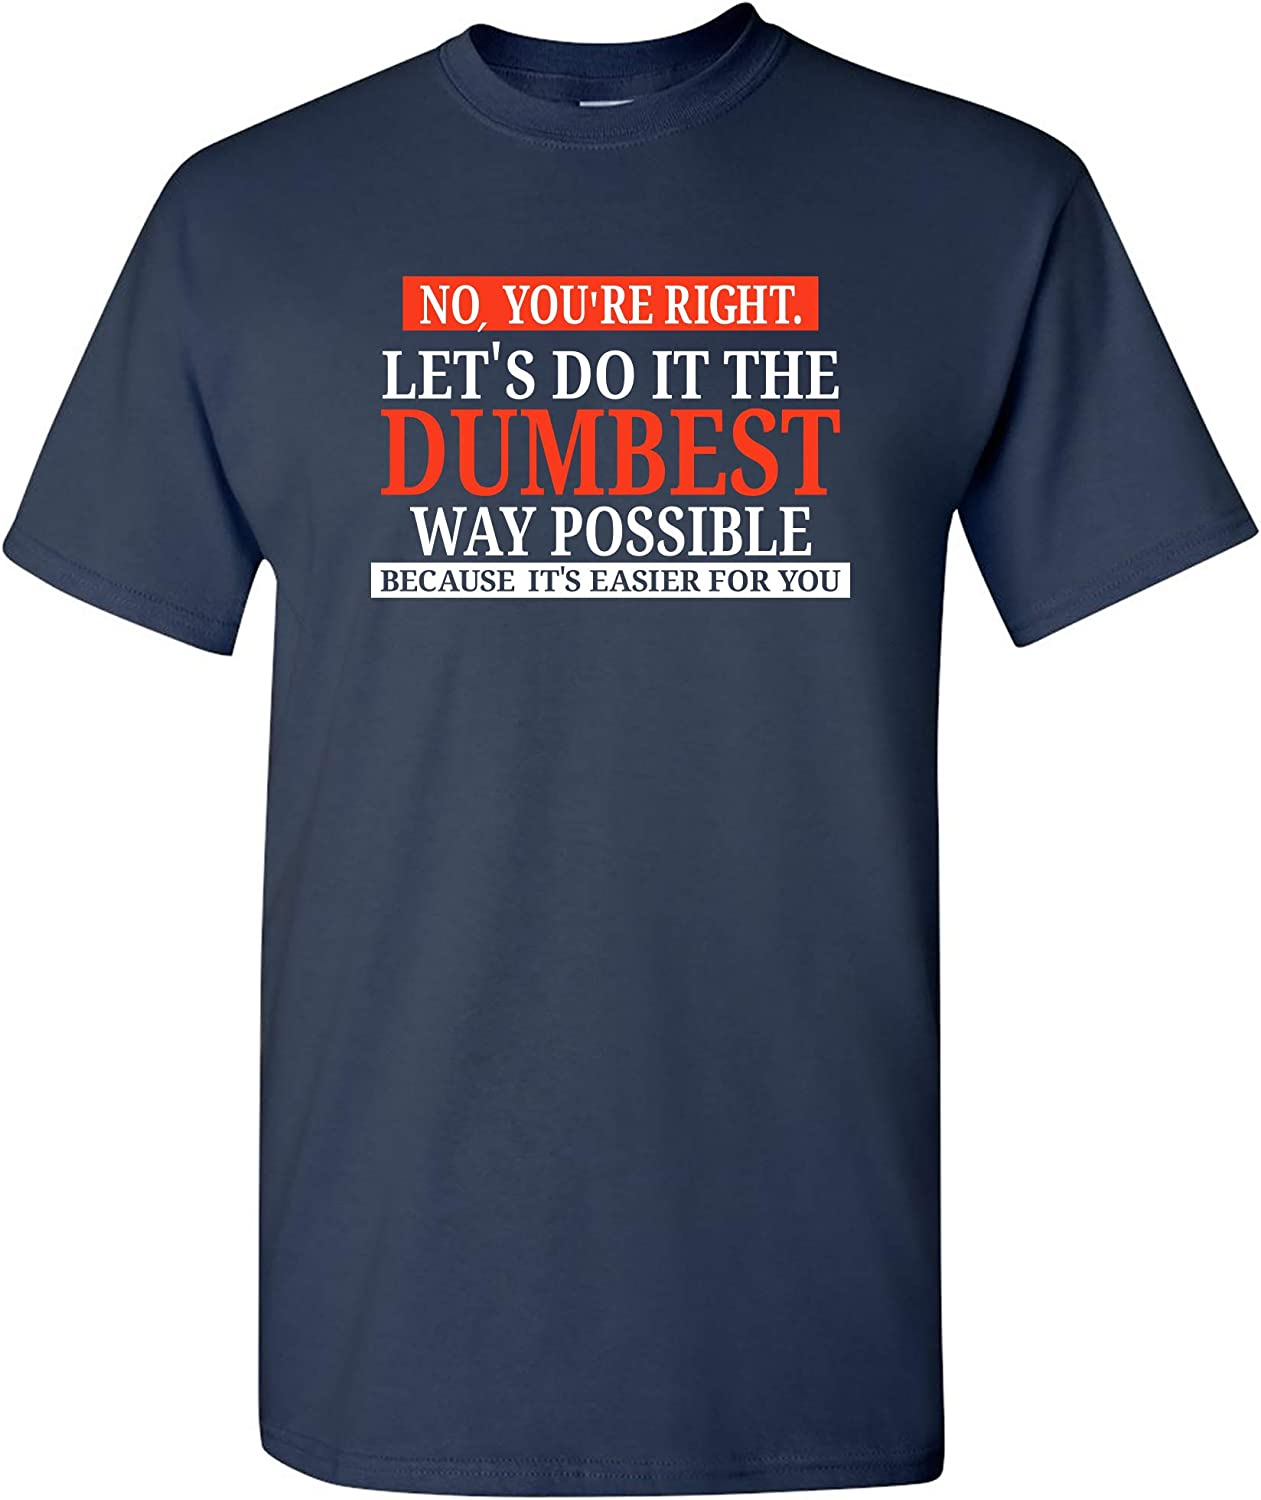 No You're Right Let's Do It The Dumbest Way Possible - Funny Sarcastic Humor Graphic T Shirt